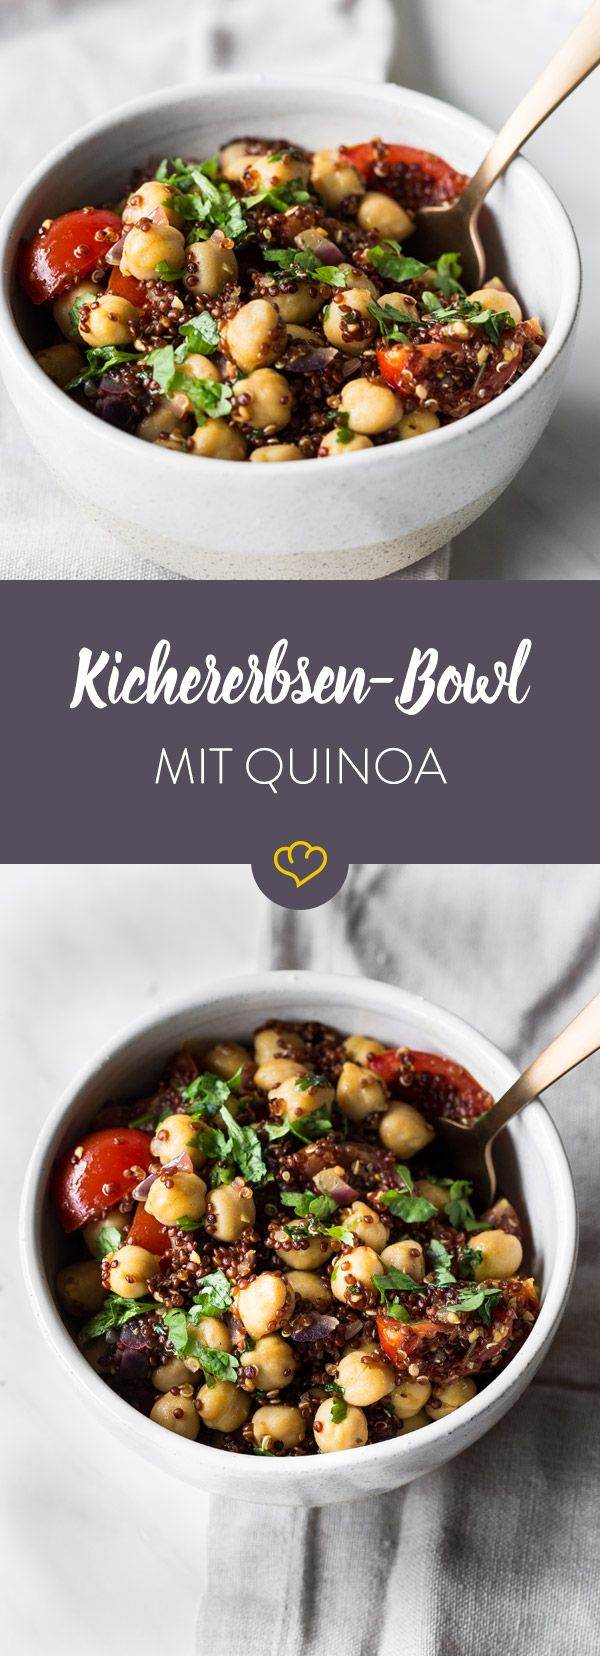 Photo of Colorful chickpea bowl with quinoa